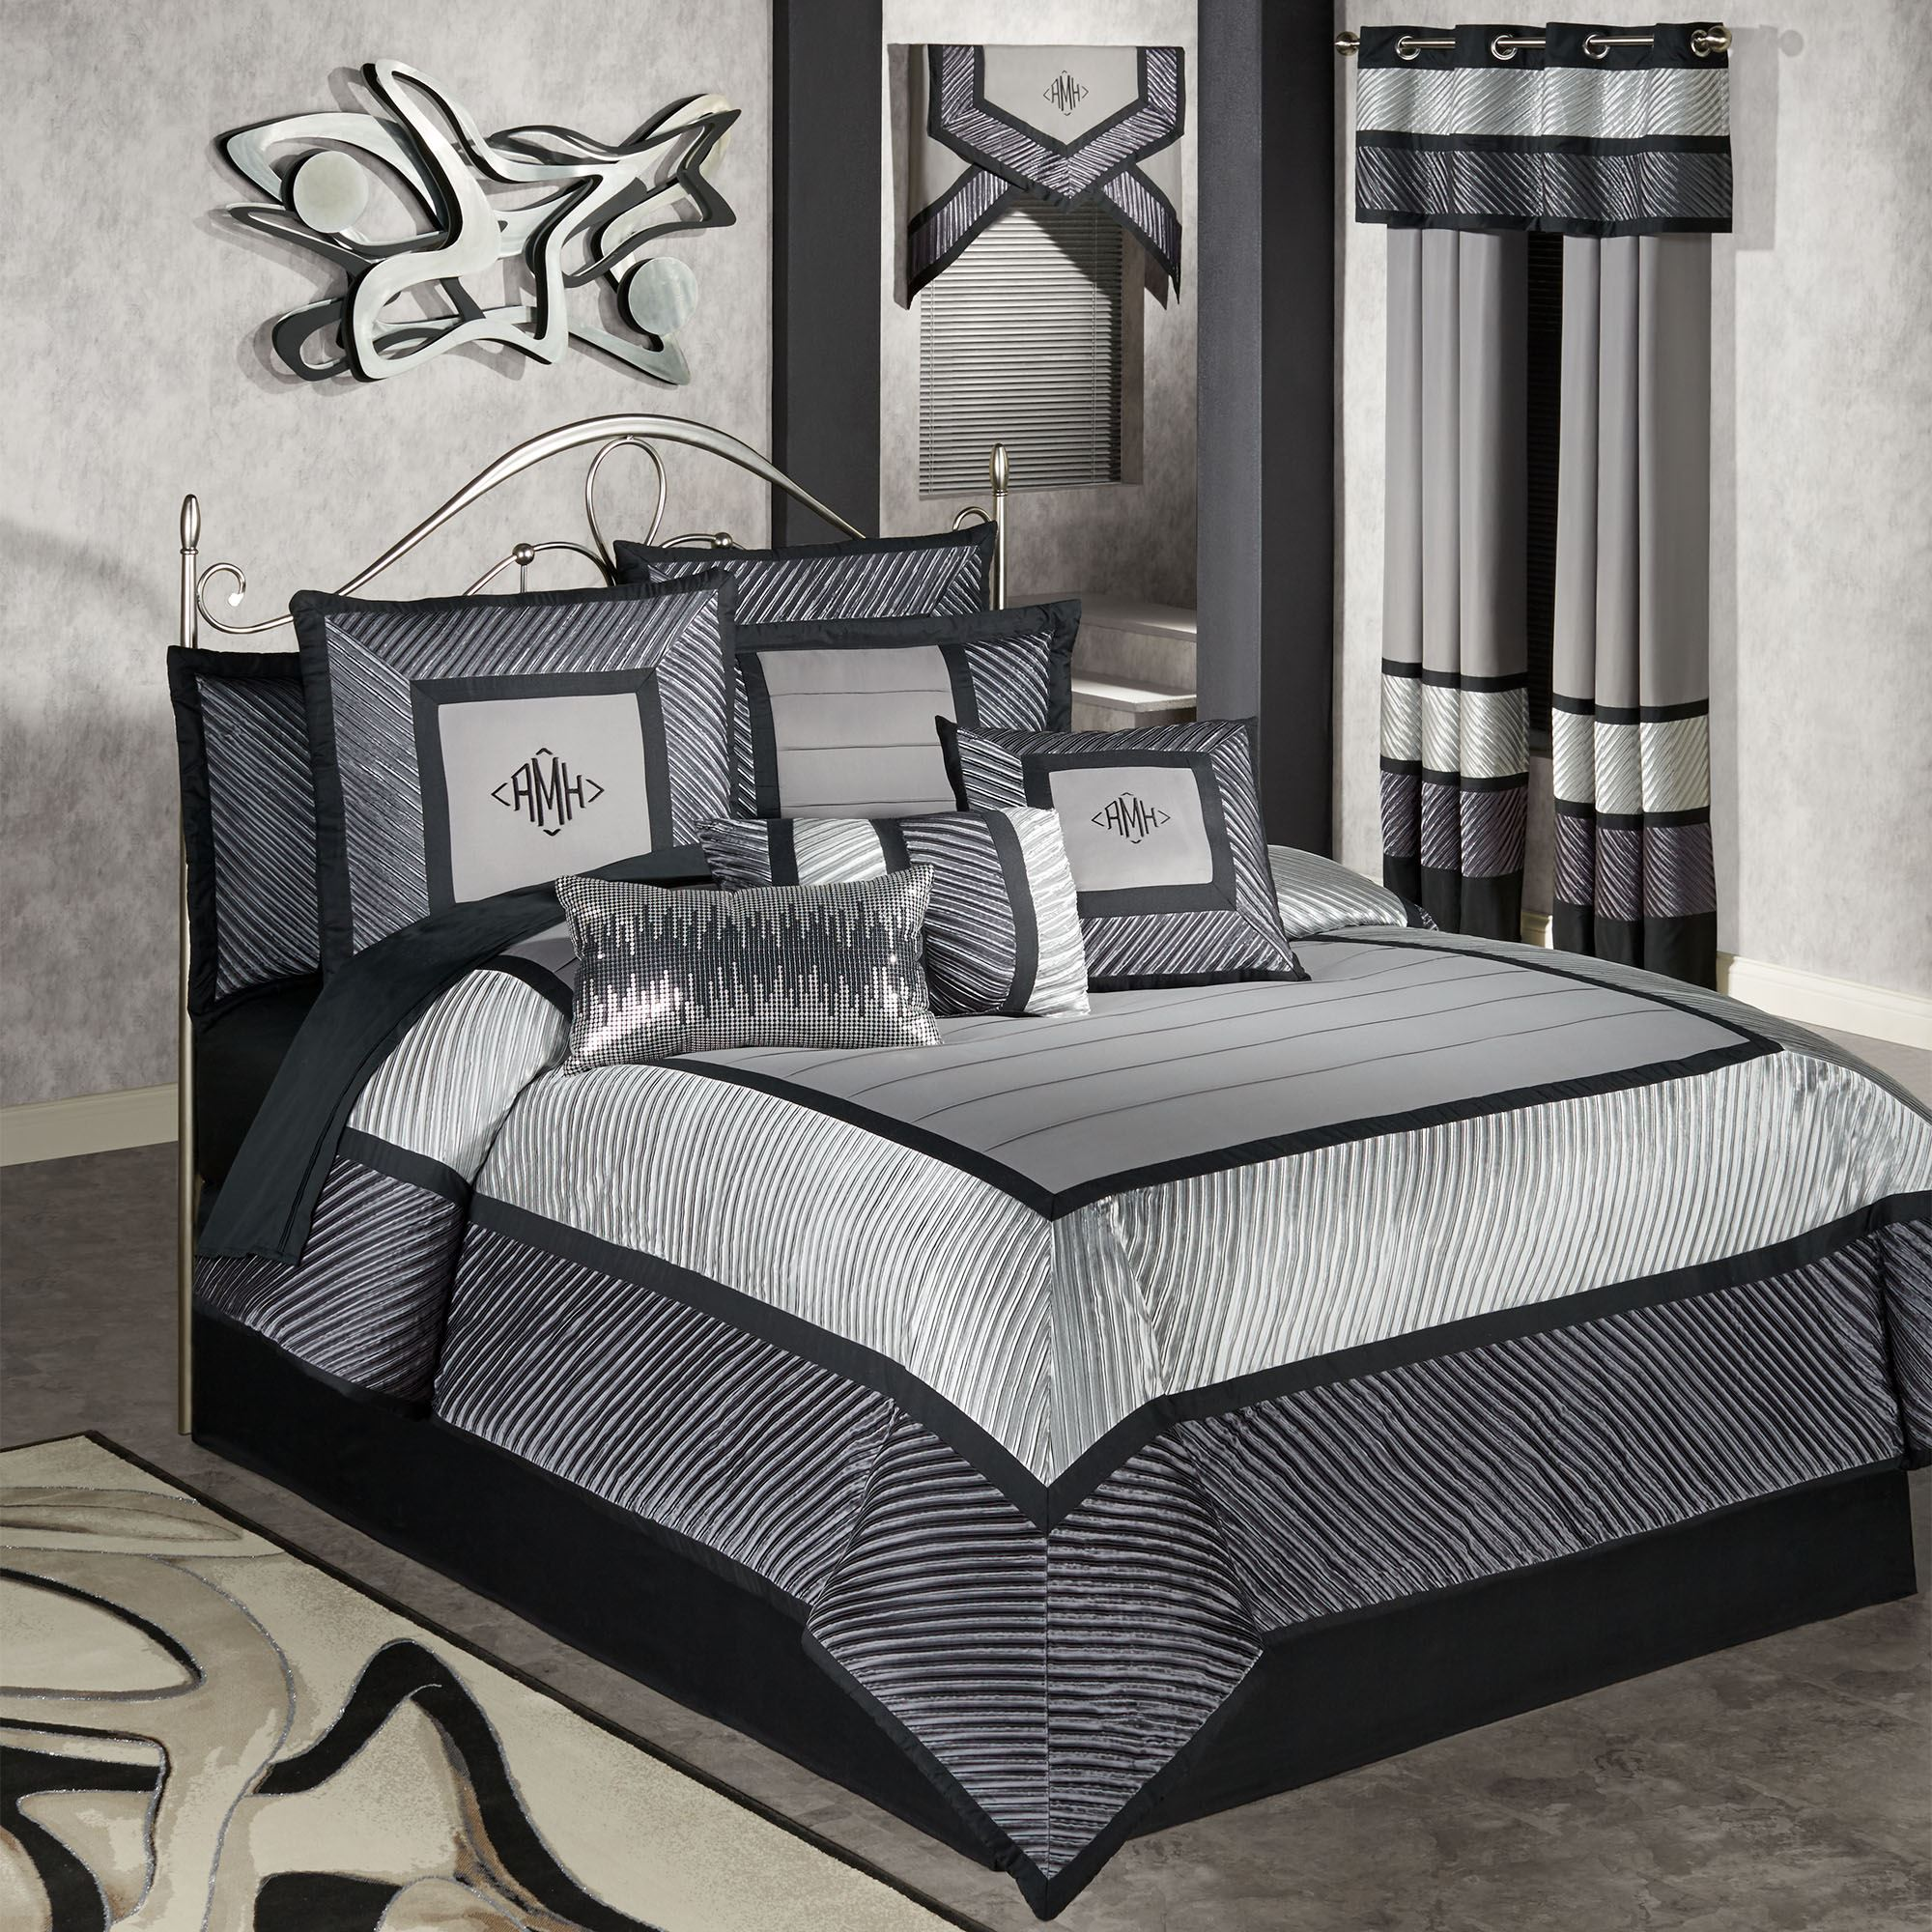 in bedding king size bed for grey comforter sets decoration ideas luxury dark bedroom